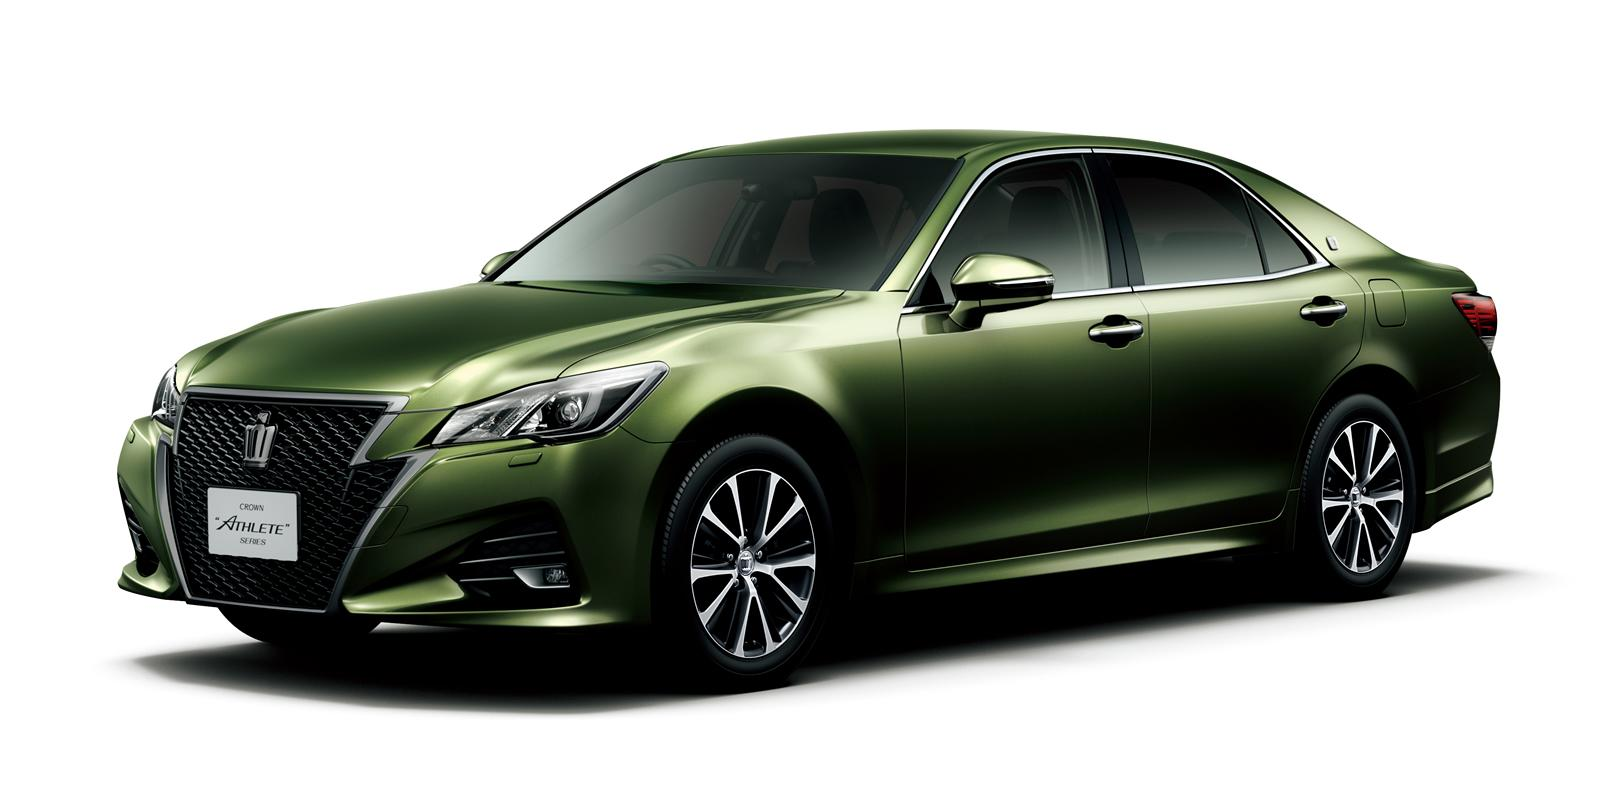 2014 toyota crown athlete is a cool sedan you can�t have